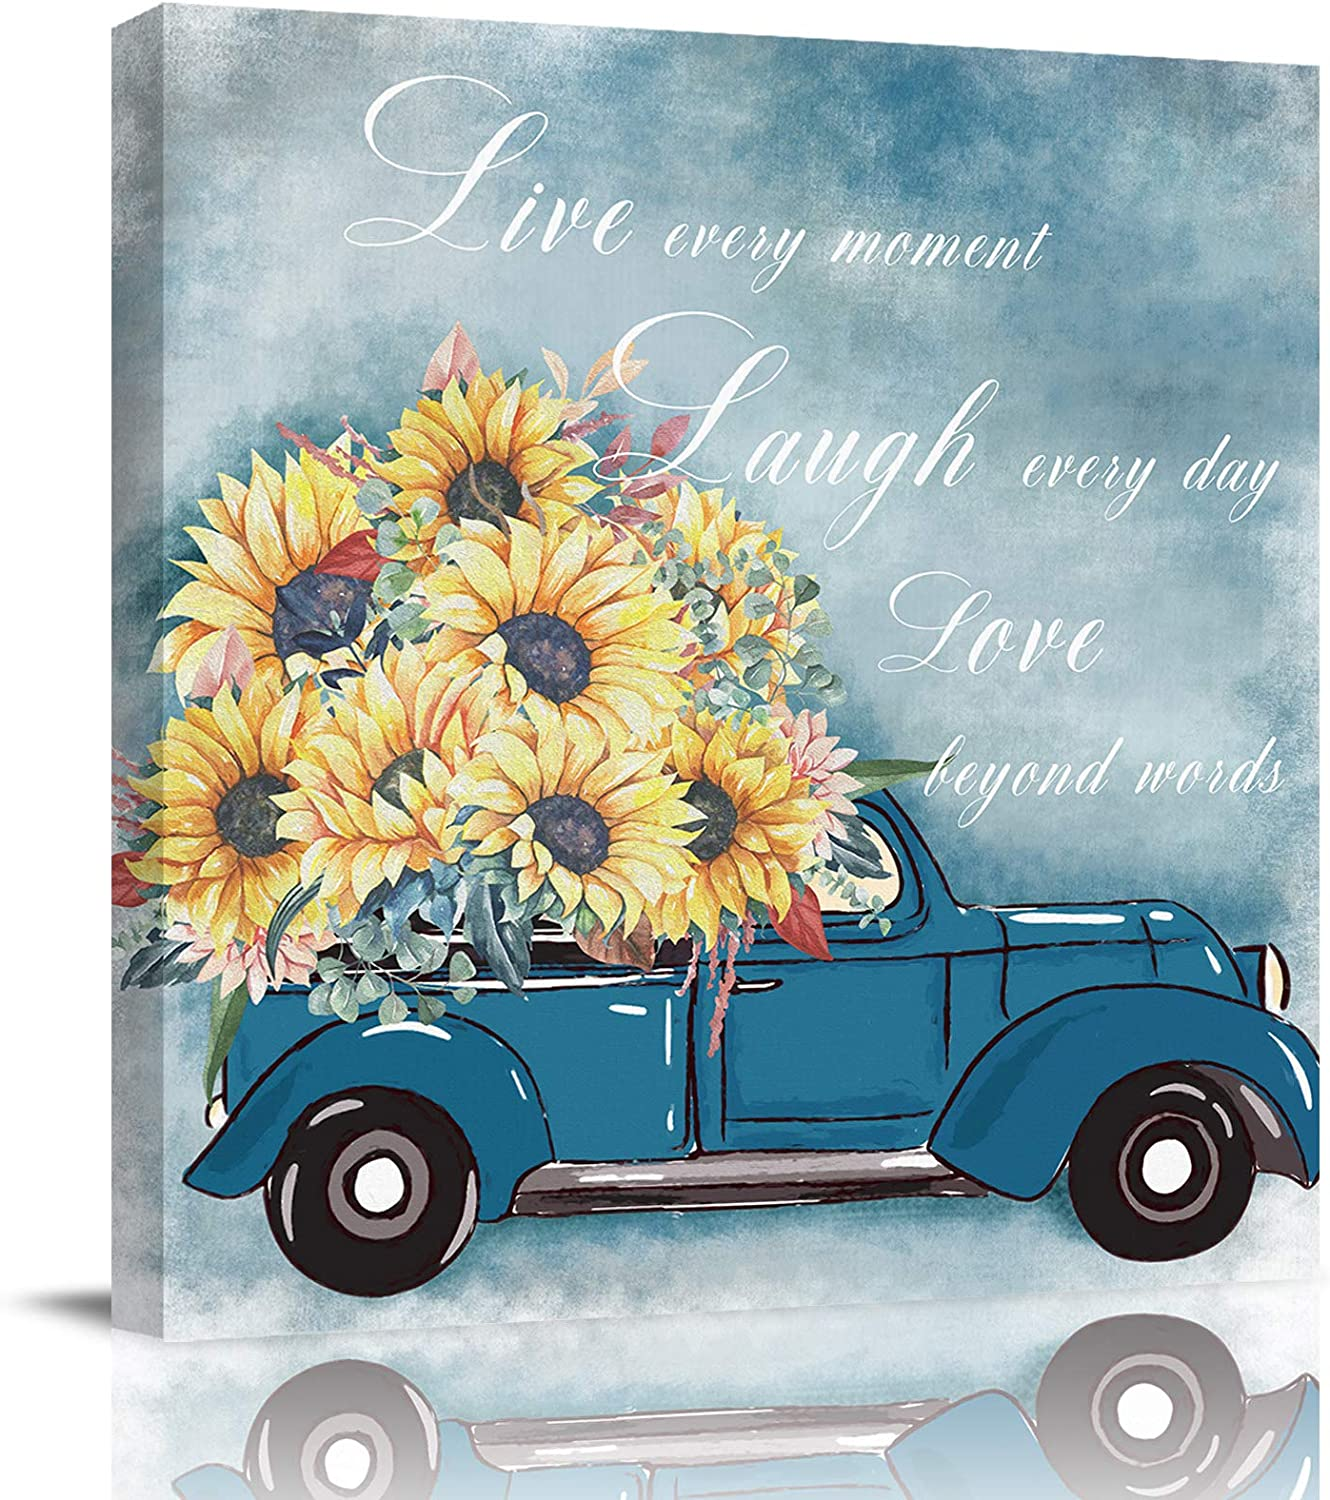 Bathroom Decor Canvas Wall Art, Blue Truck Carrying Sunflower Flowers Quotes Live Laugh Love Canvas Prints Gallery Artworks for Bedroom, Stretched and Framed Ready to Hang, 20x20 Inch Wall Decor